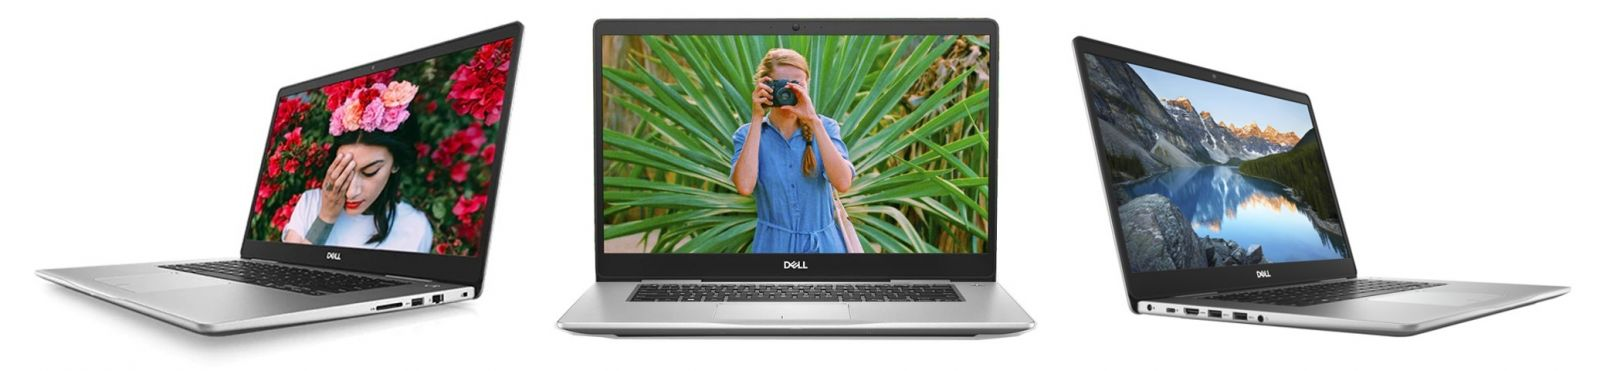 DELL INSPIRON N7570-782P82